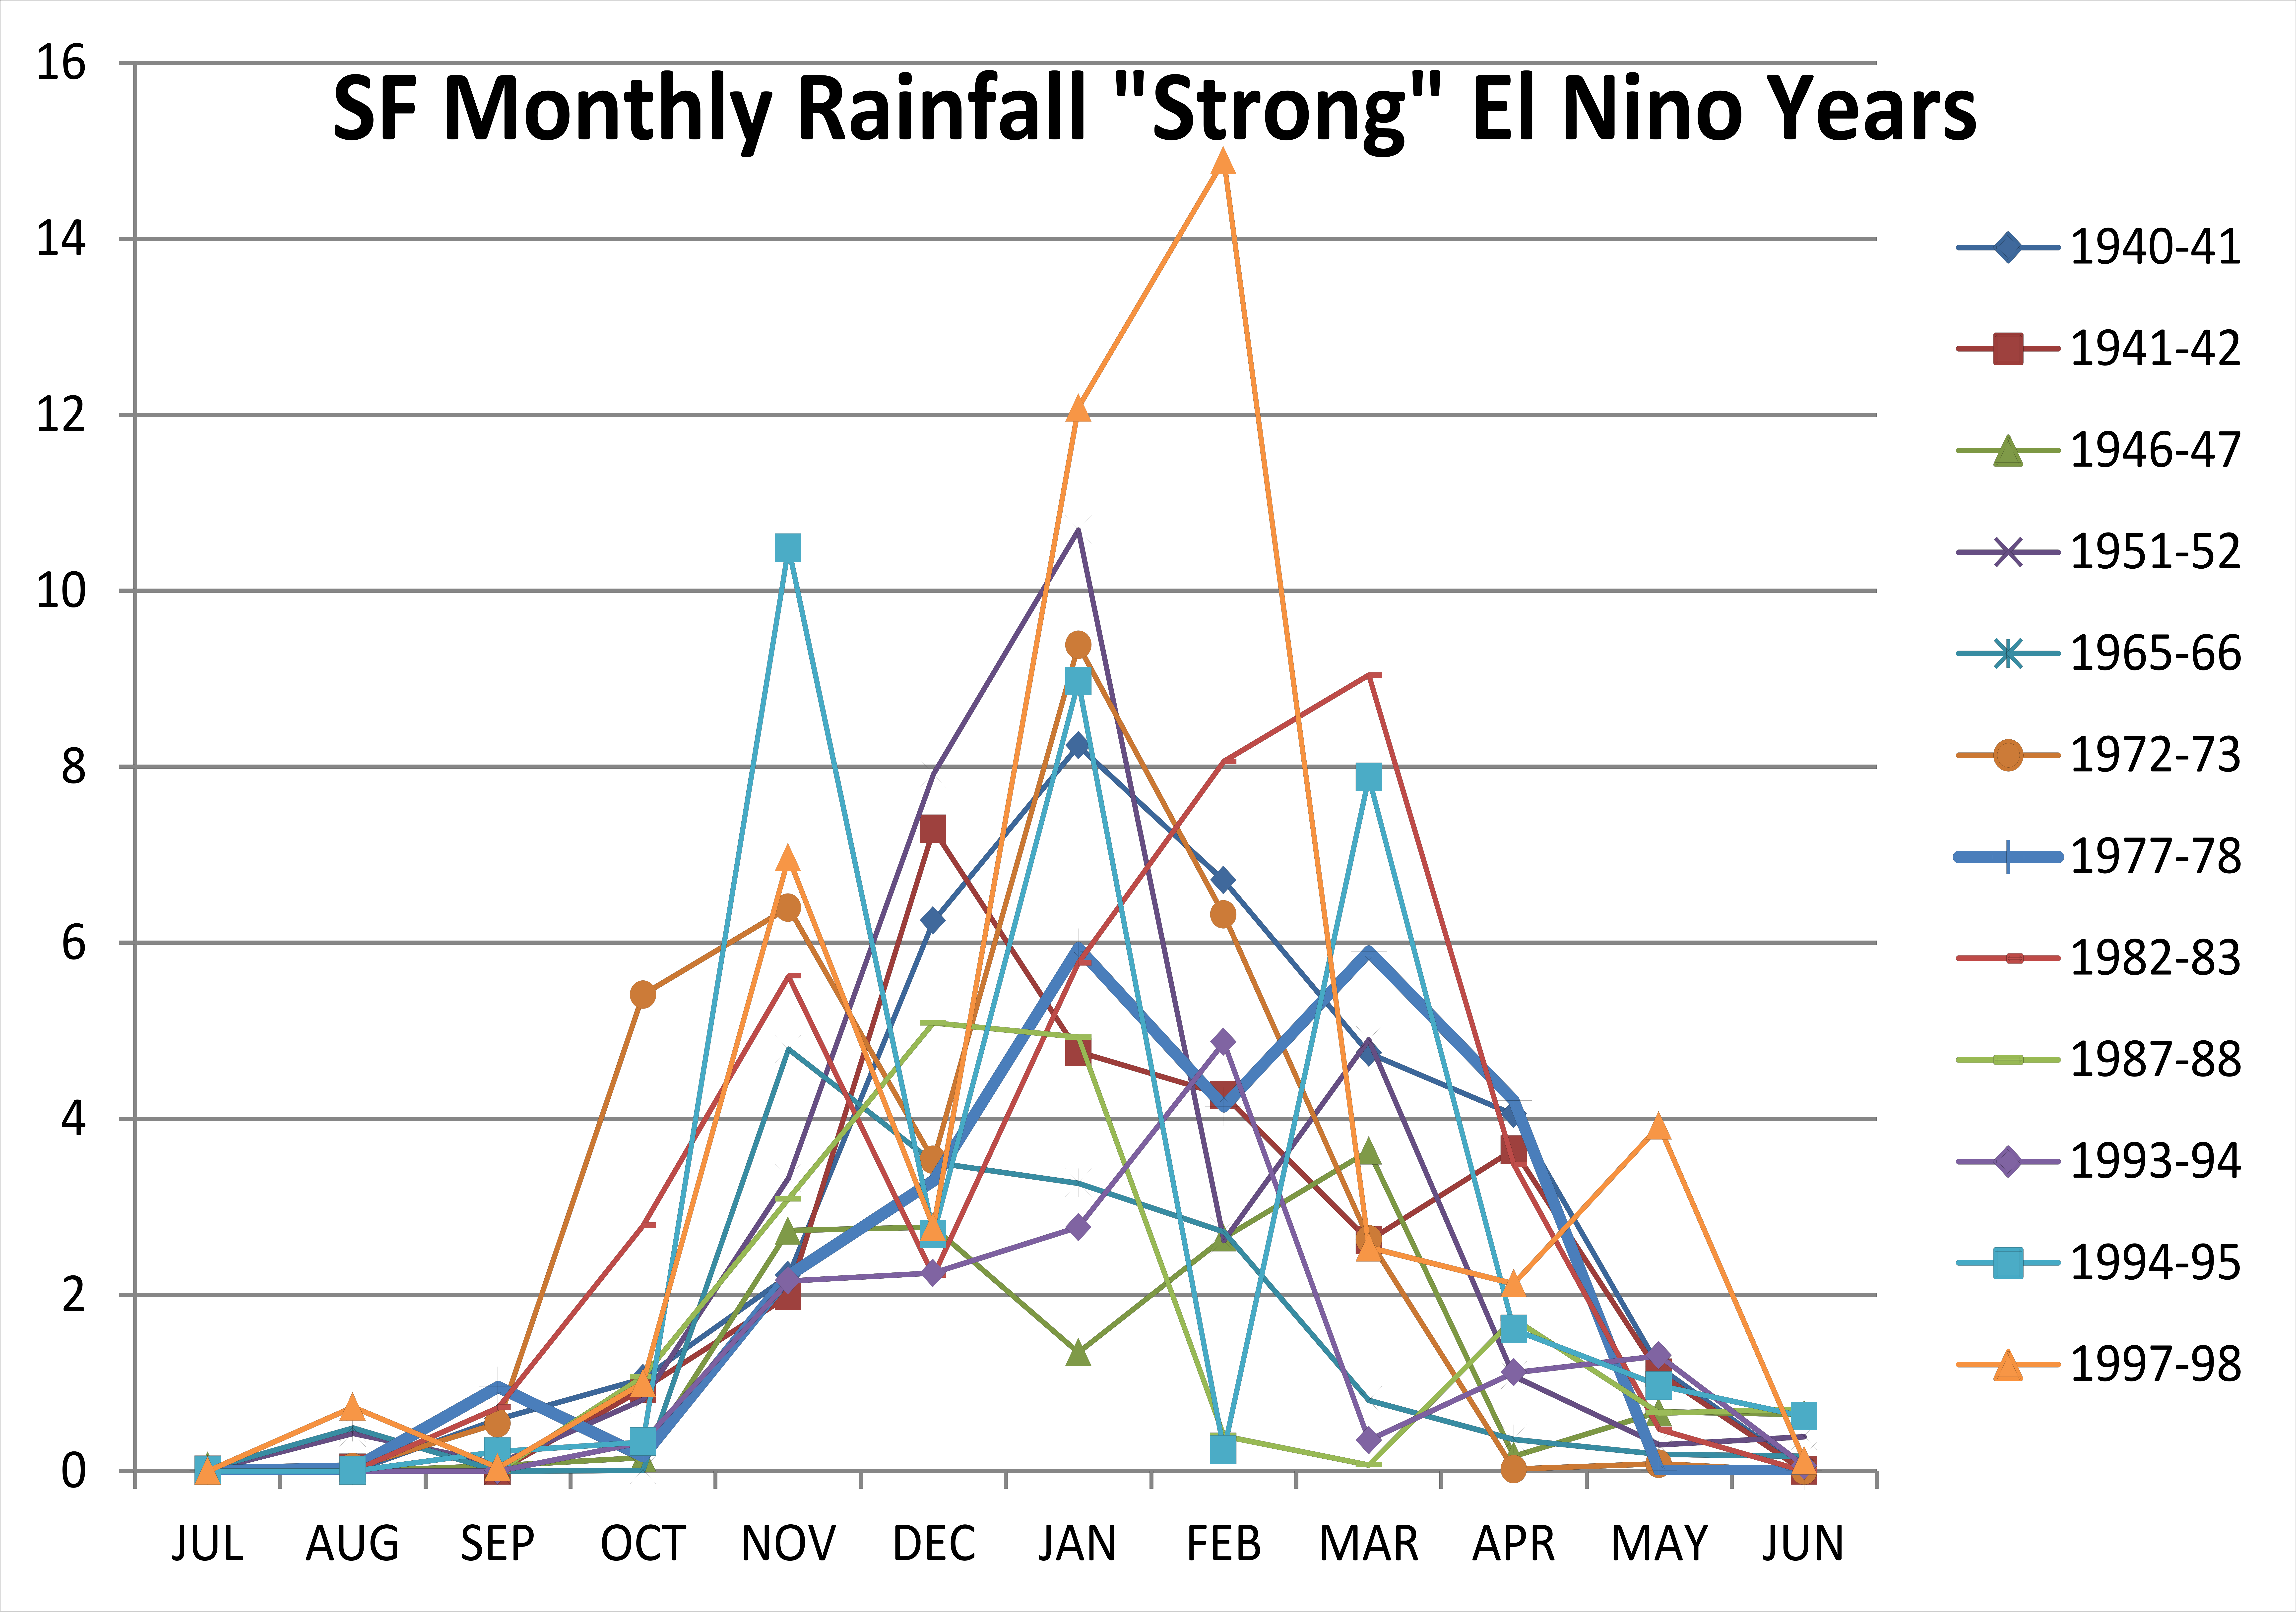 el nino essay funny El nino essay - choose the service, and our qualified writers will do your order supremely well begin working on your essay now with professional guidance guaranteed by the service.